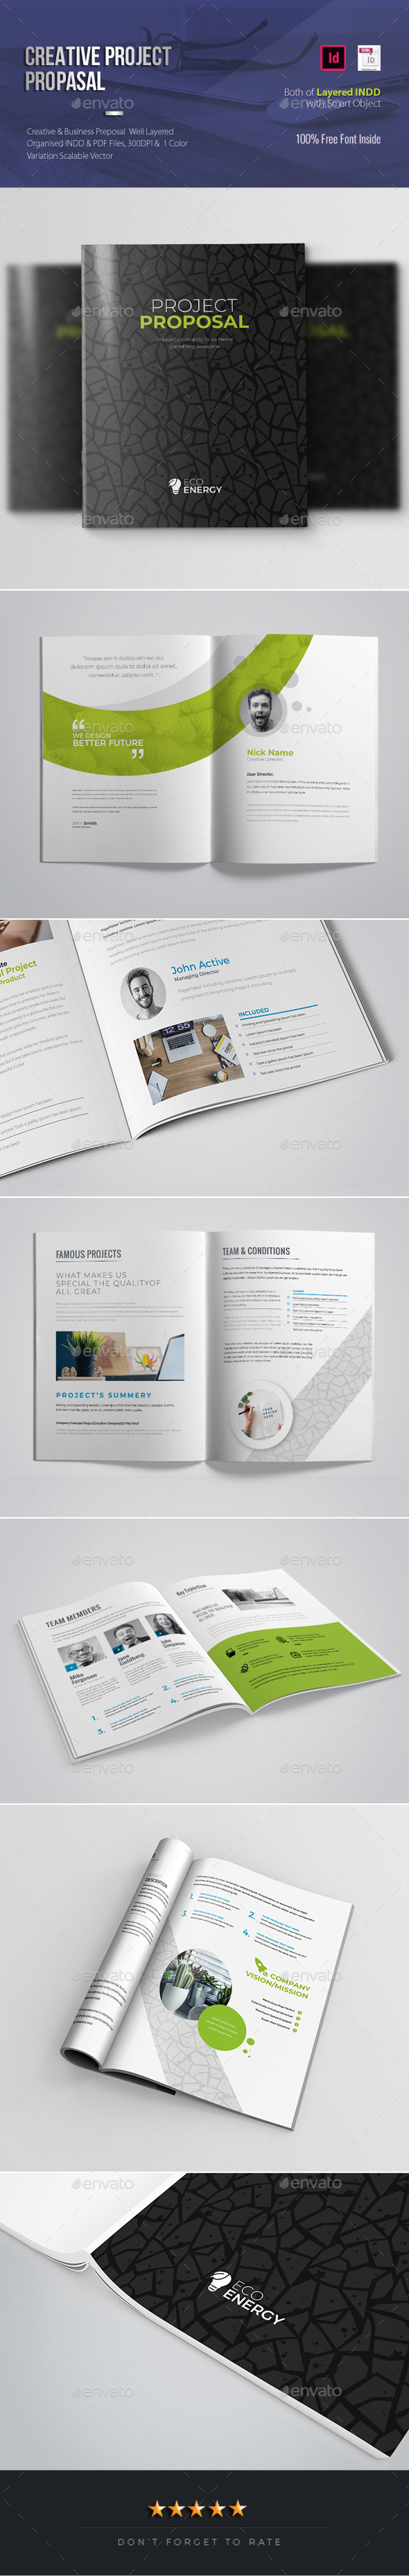 Creative Project Proposal - Proposals & Invoices Stationery